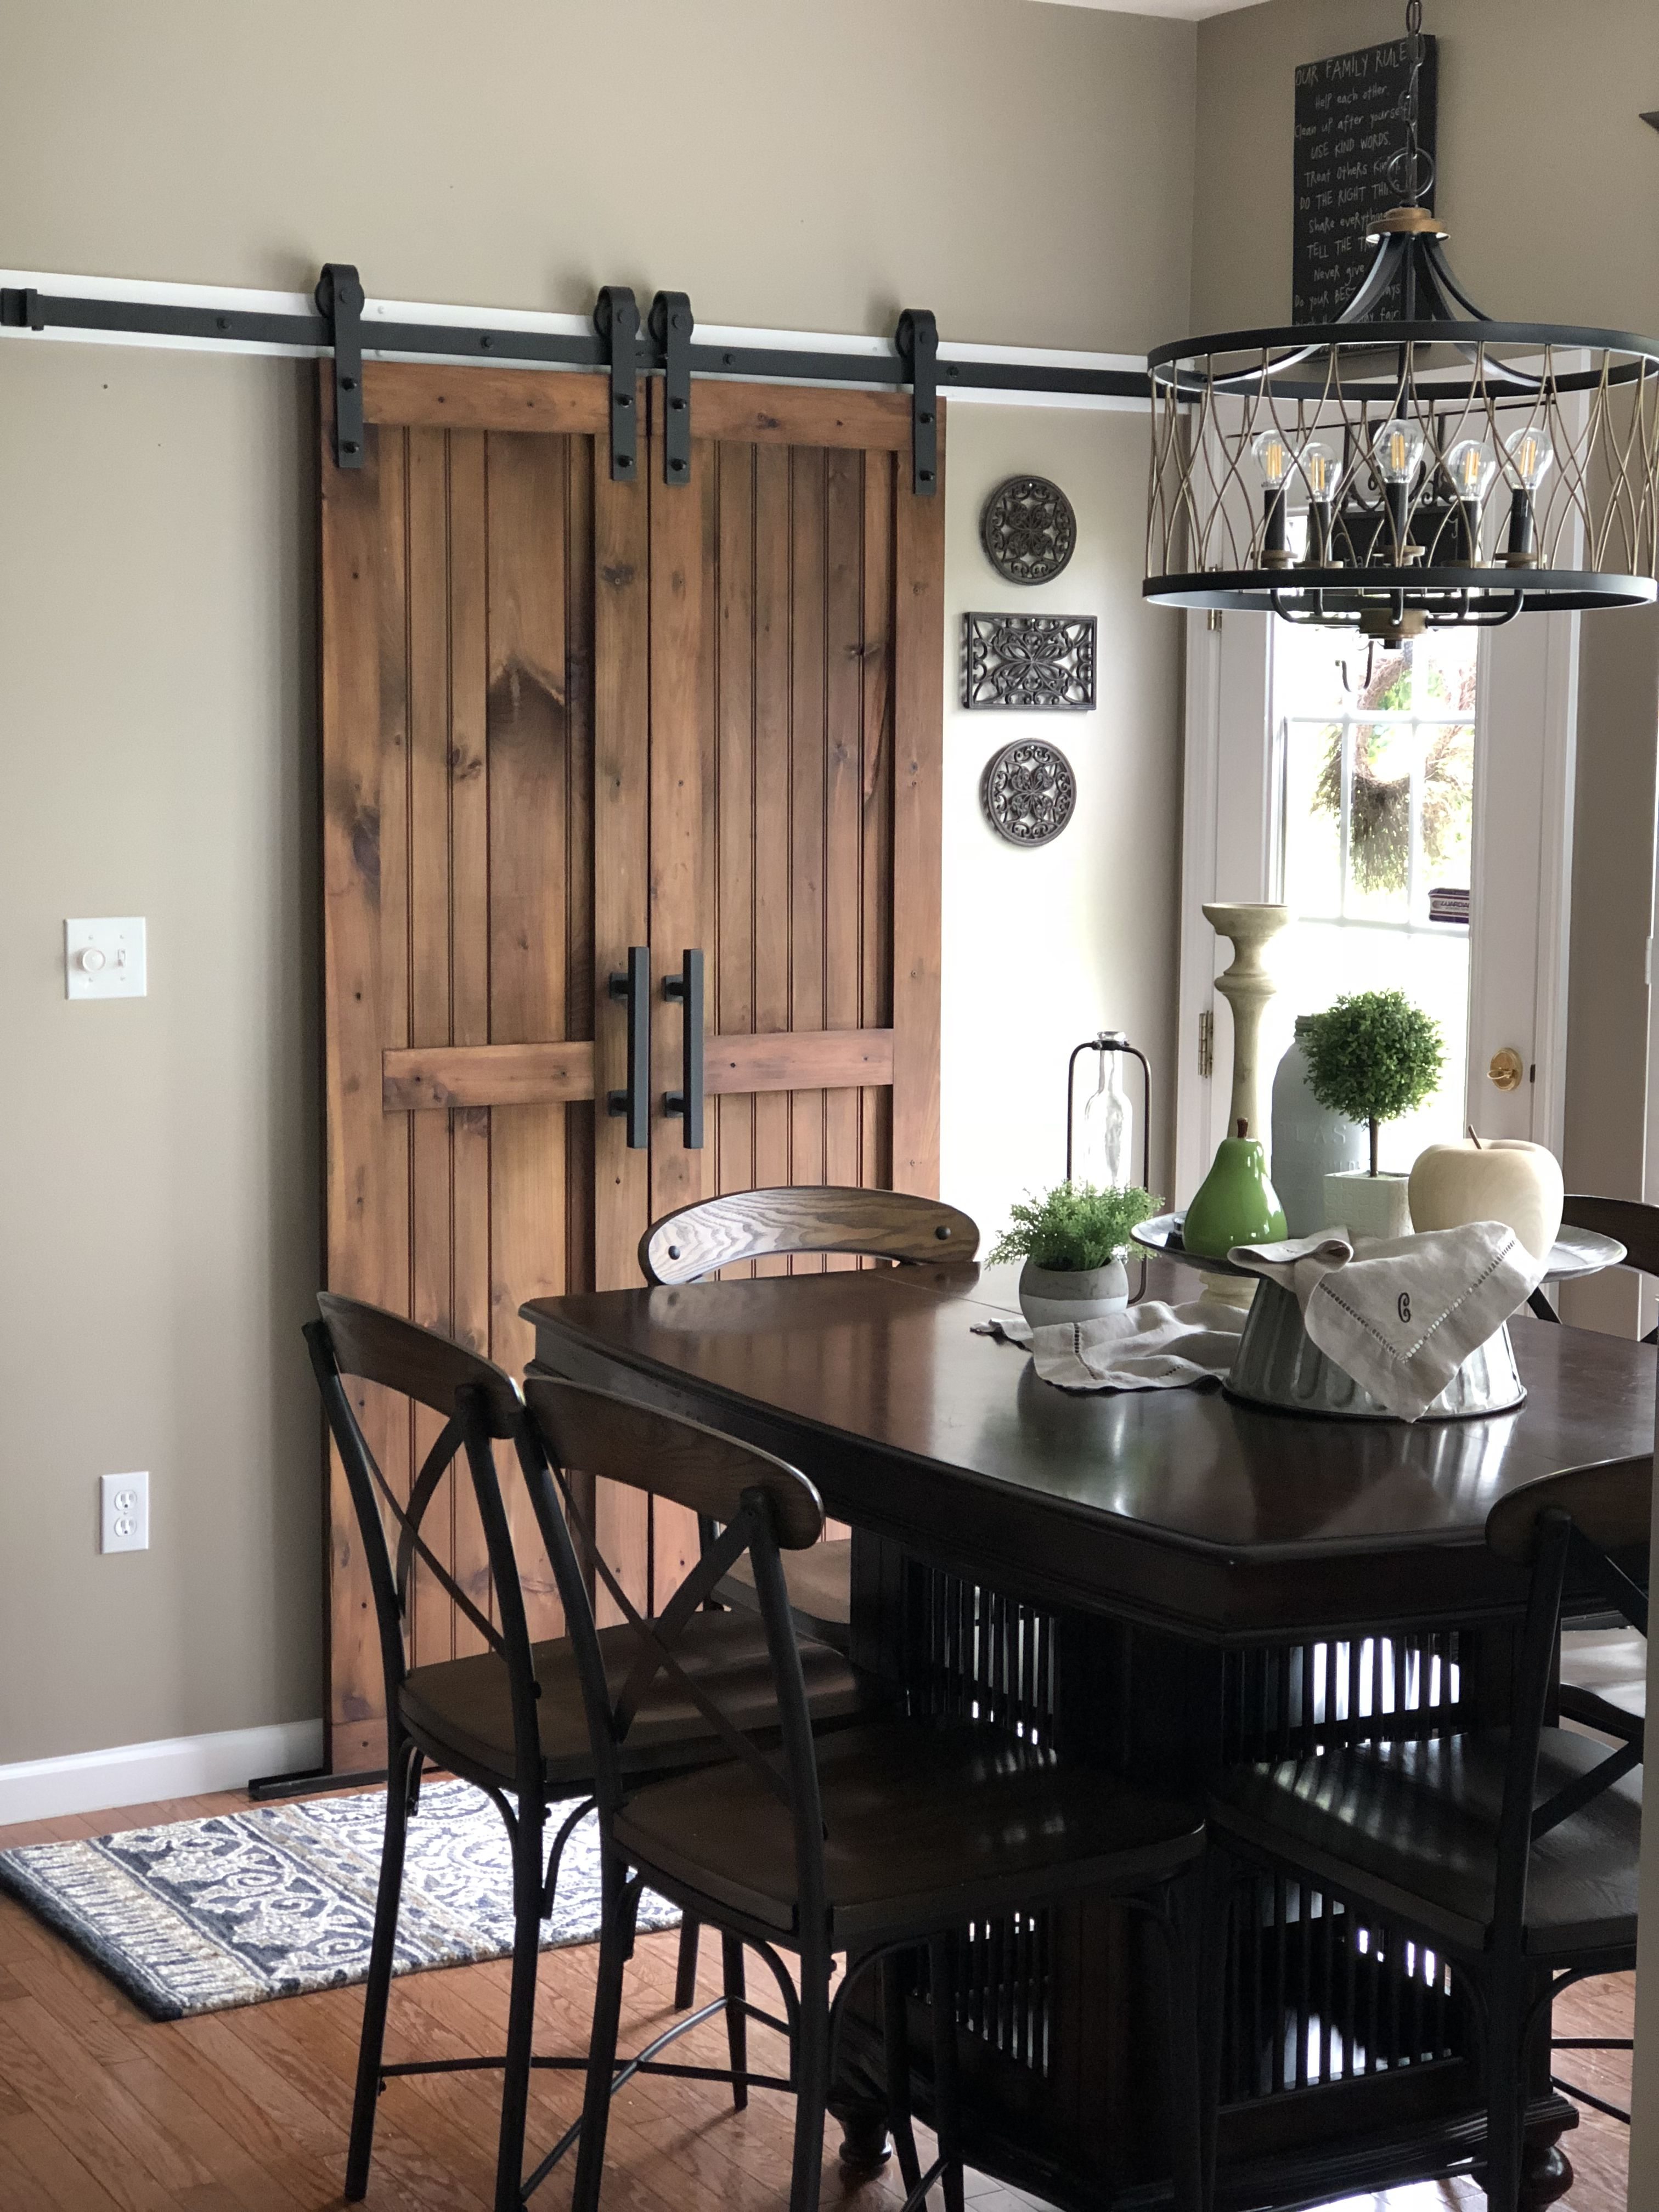 Split Barn Doors For My Laundry Room Home Remodeling New Homes Wood Doors